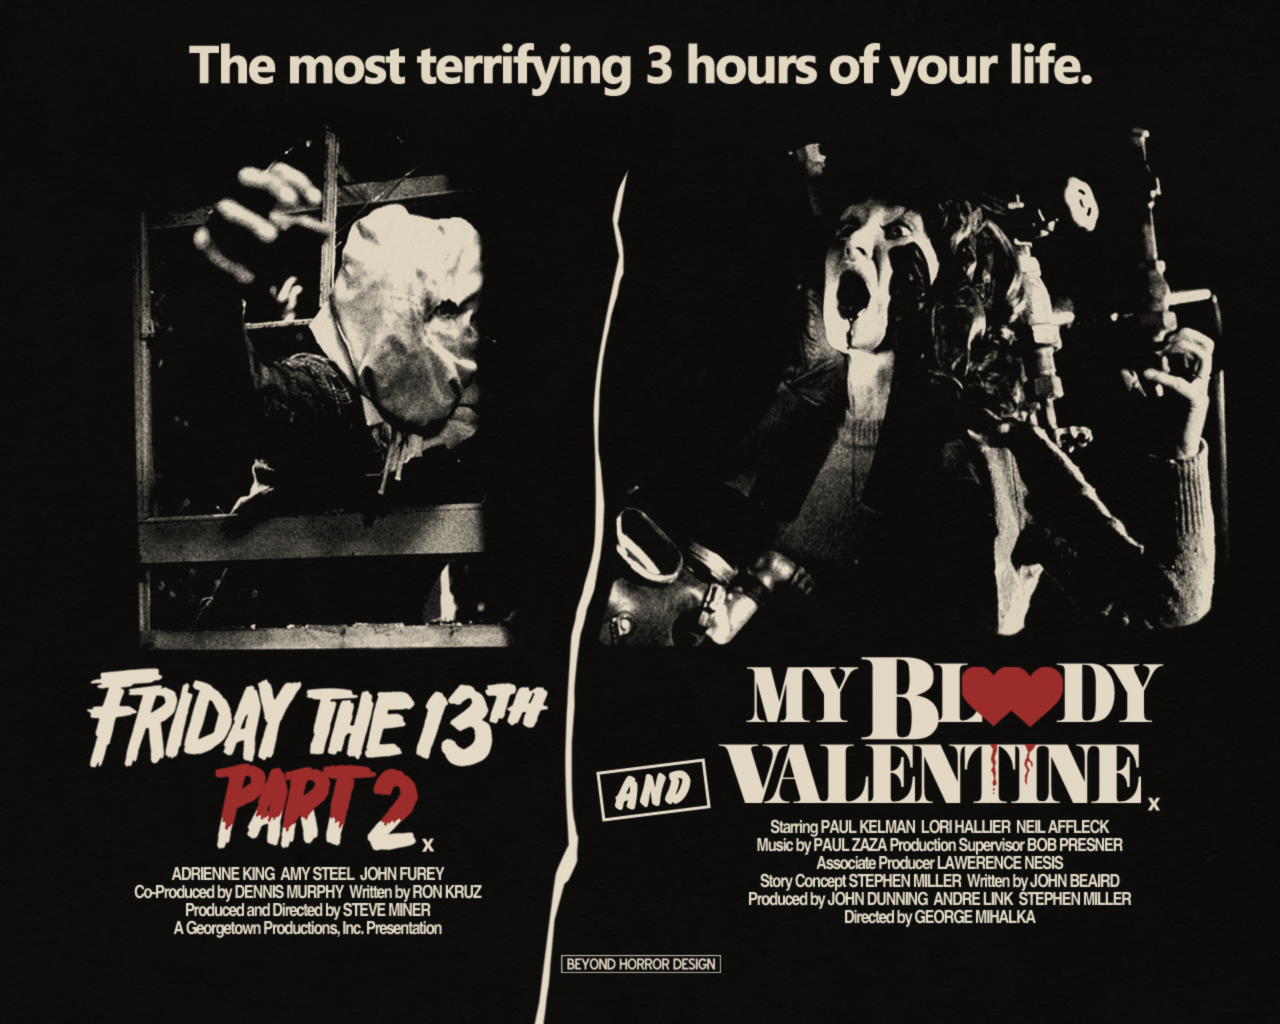 FRIDAY THE 13TH PART 2 / MY BLOODY VALENTINE (1981)